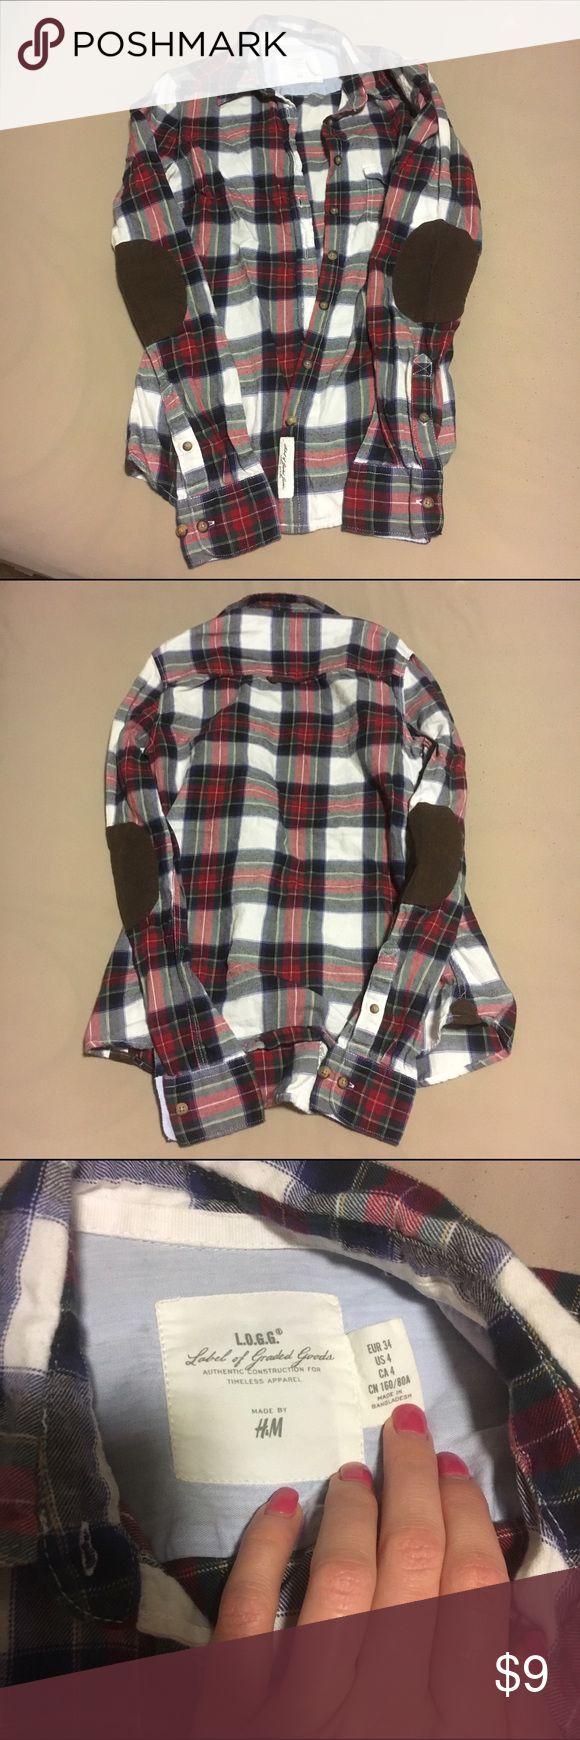 HM Flannel Top Fits like a small. Adorable elbow patches on a soft flannel material. Perfect for fall!! H&M Tops Button Down Shirts